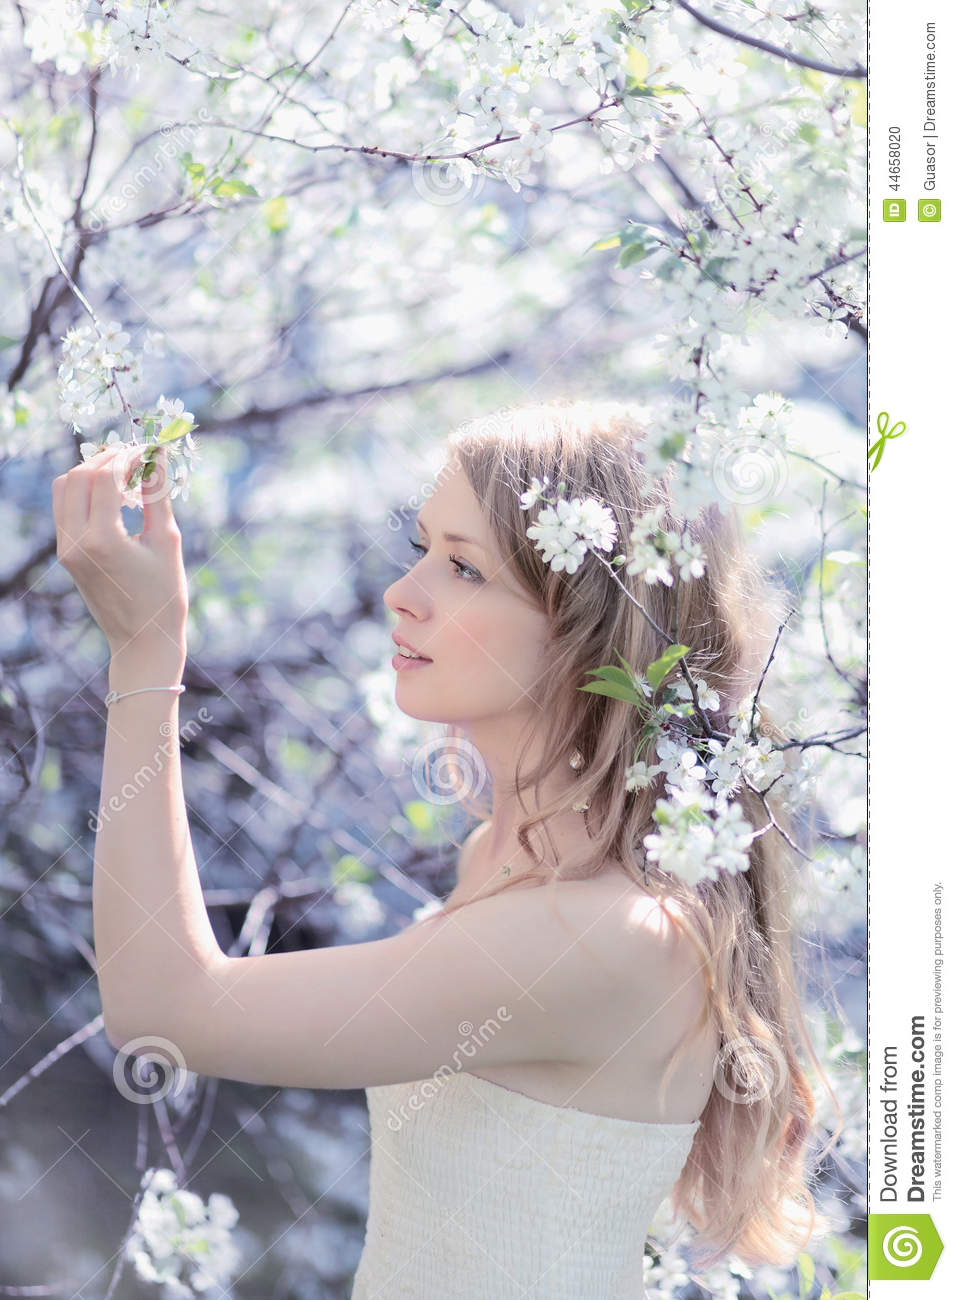 beautiful cute girl. spring day stock photo - image of garden, happy